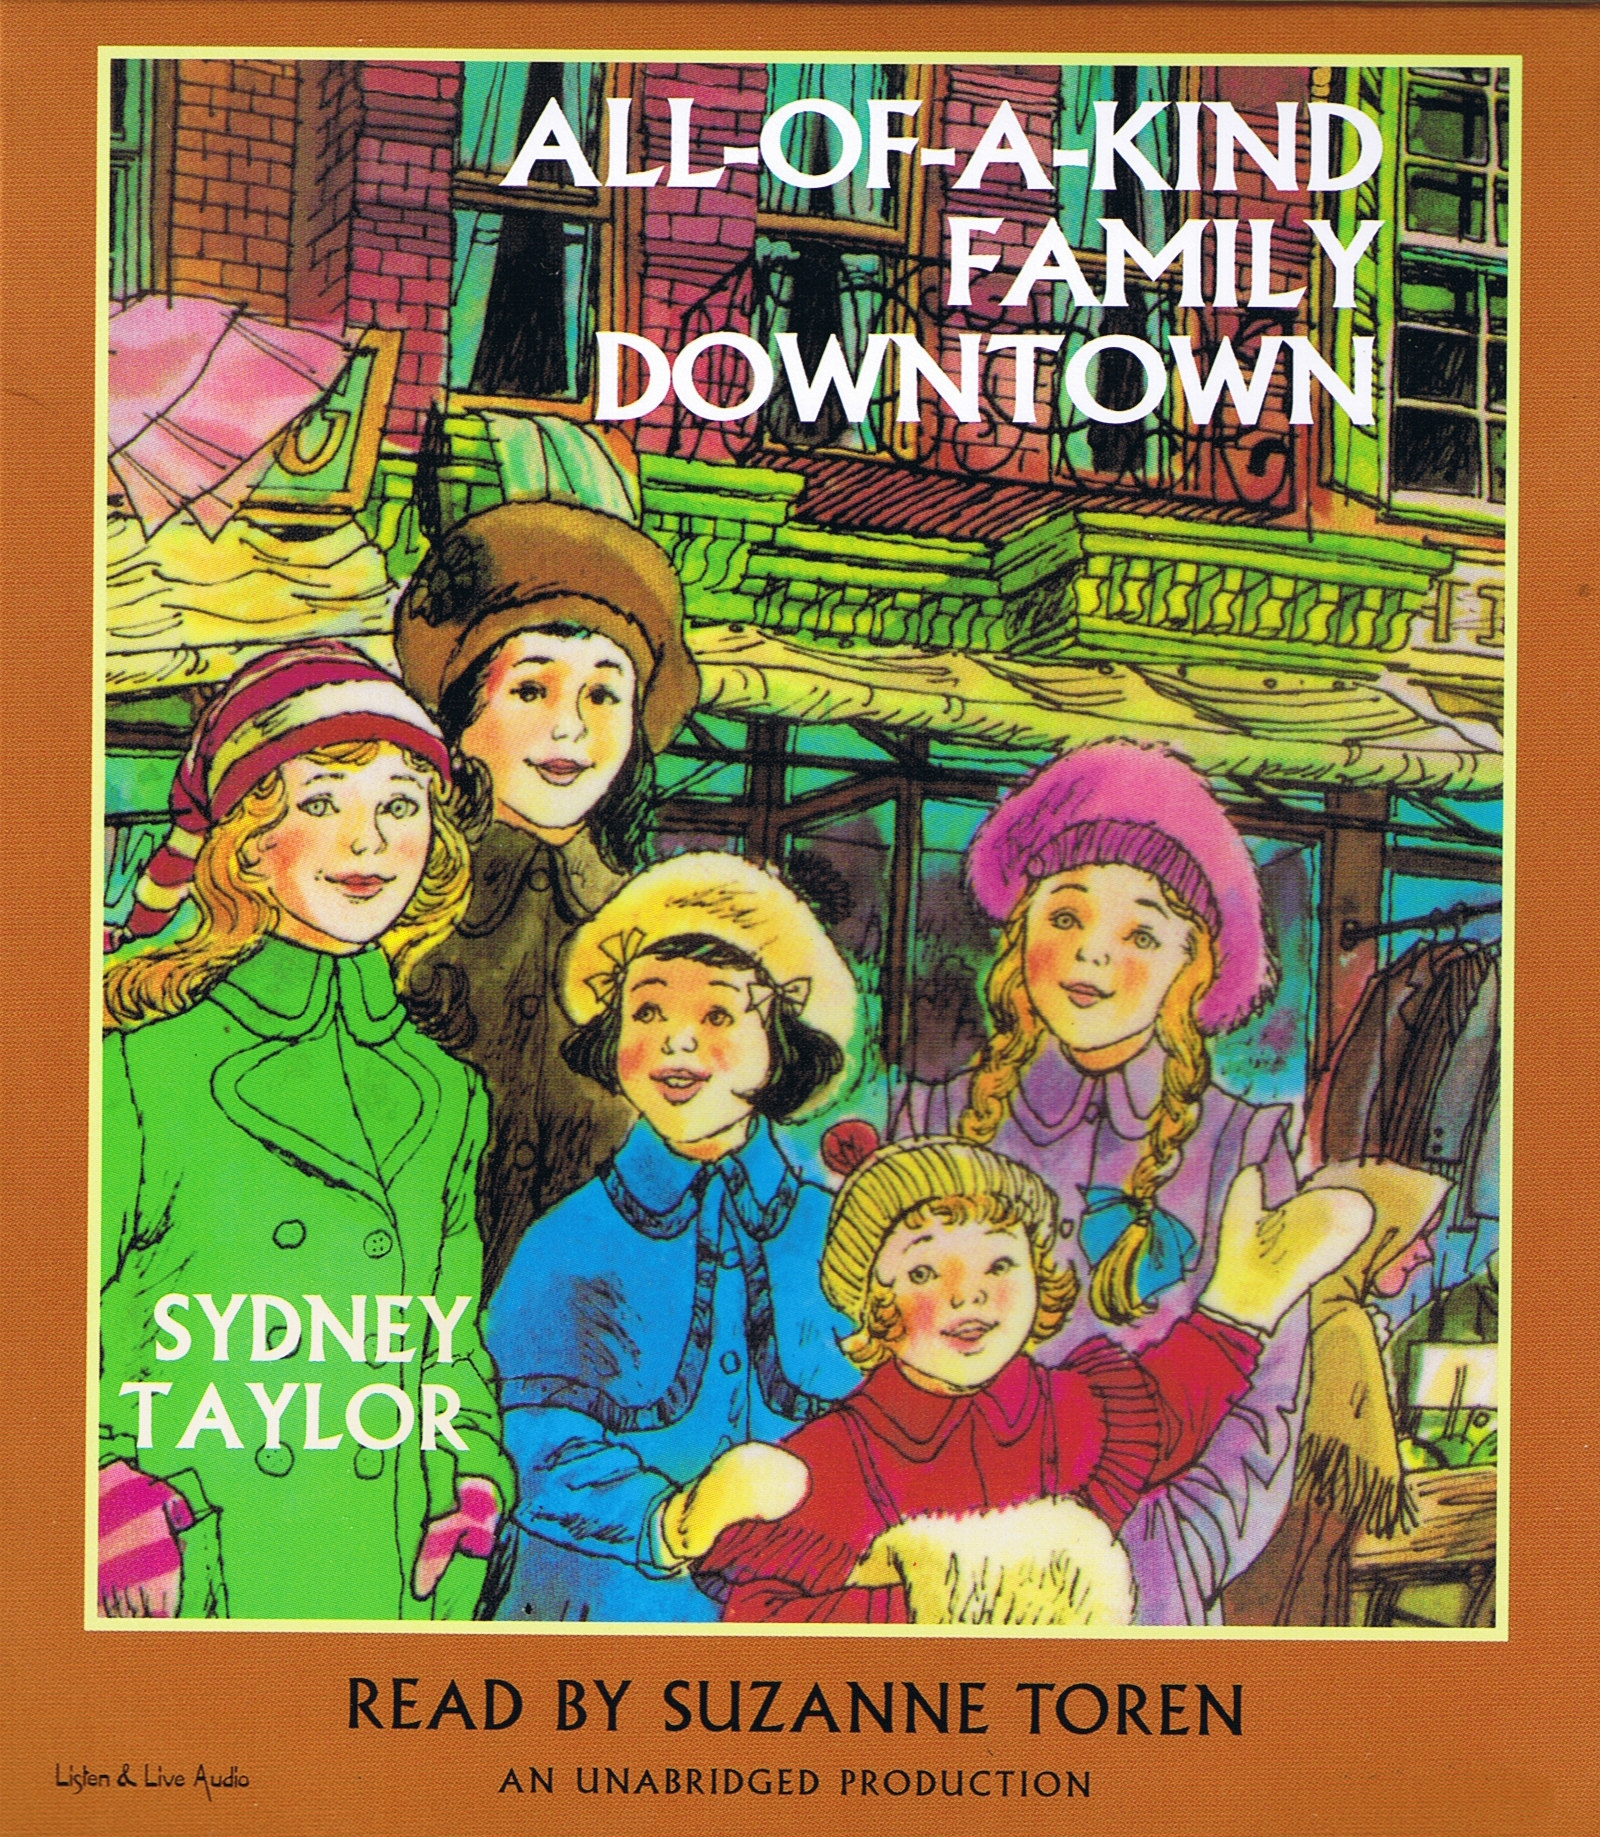 All-Of-A-Kind Family Downtown [3CD]